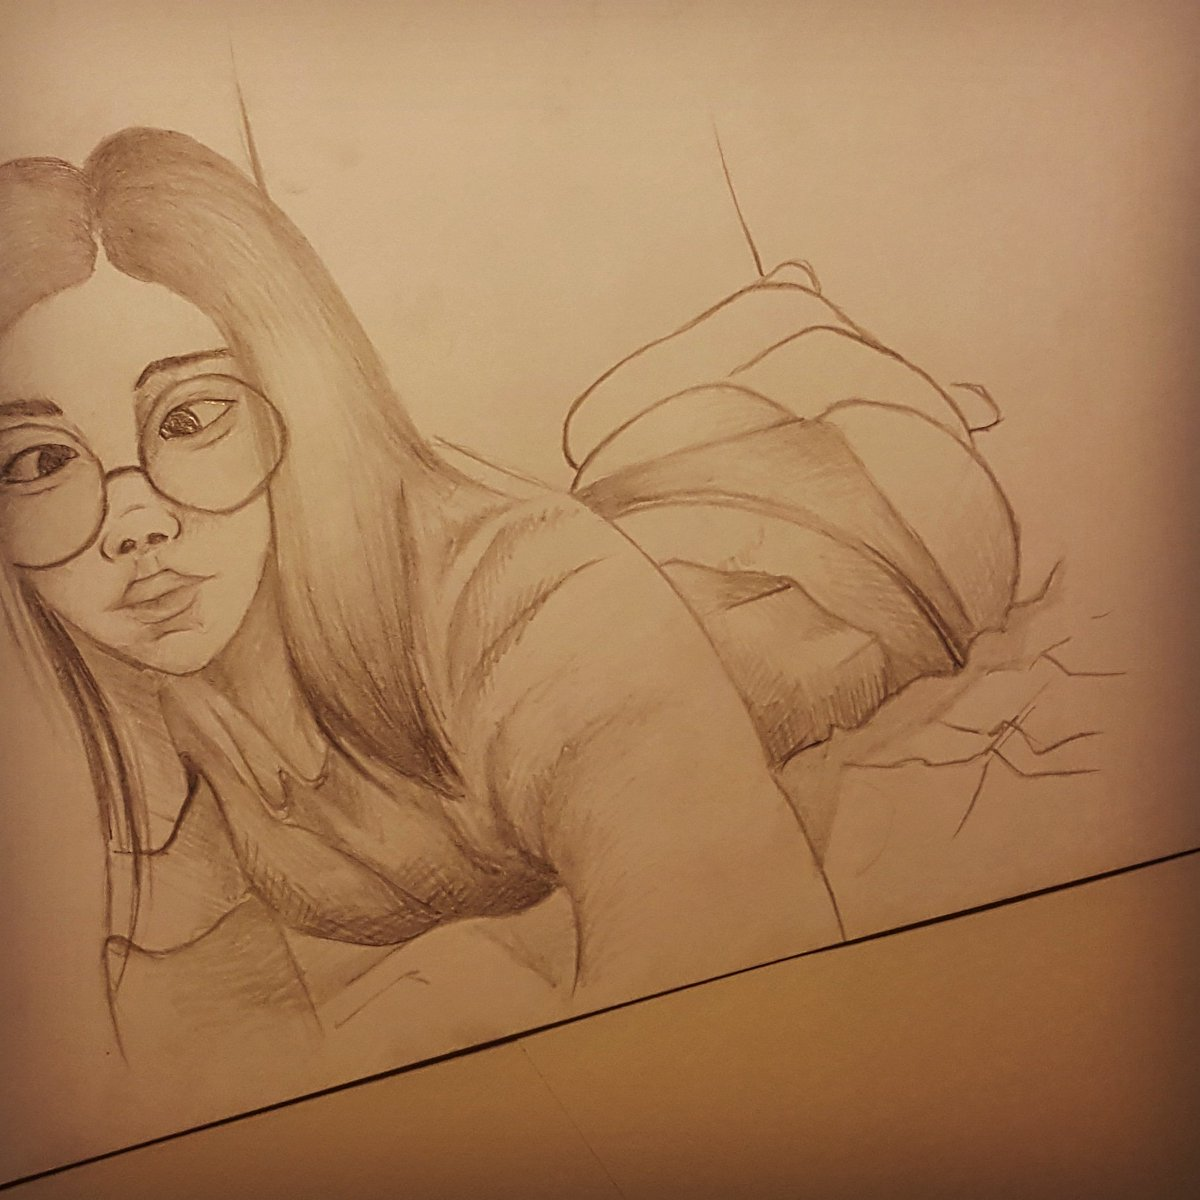 Go and get ur commission now!! DM for information and pricelist #eroticart #hot #ass #girl #panties #art #pencil #Pencildrawing #glasses #horny #sketching #sketchbook #artist #drawing #sexygirl #hottie #nudeart #nude #naked #flashing #ArtistOnTwitter